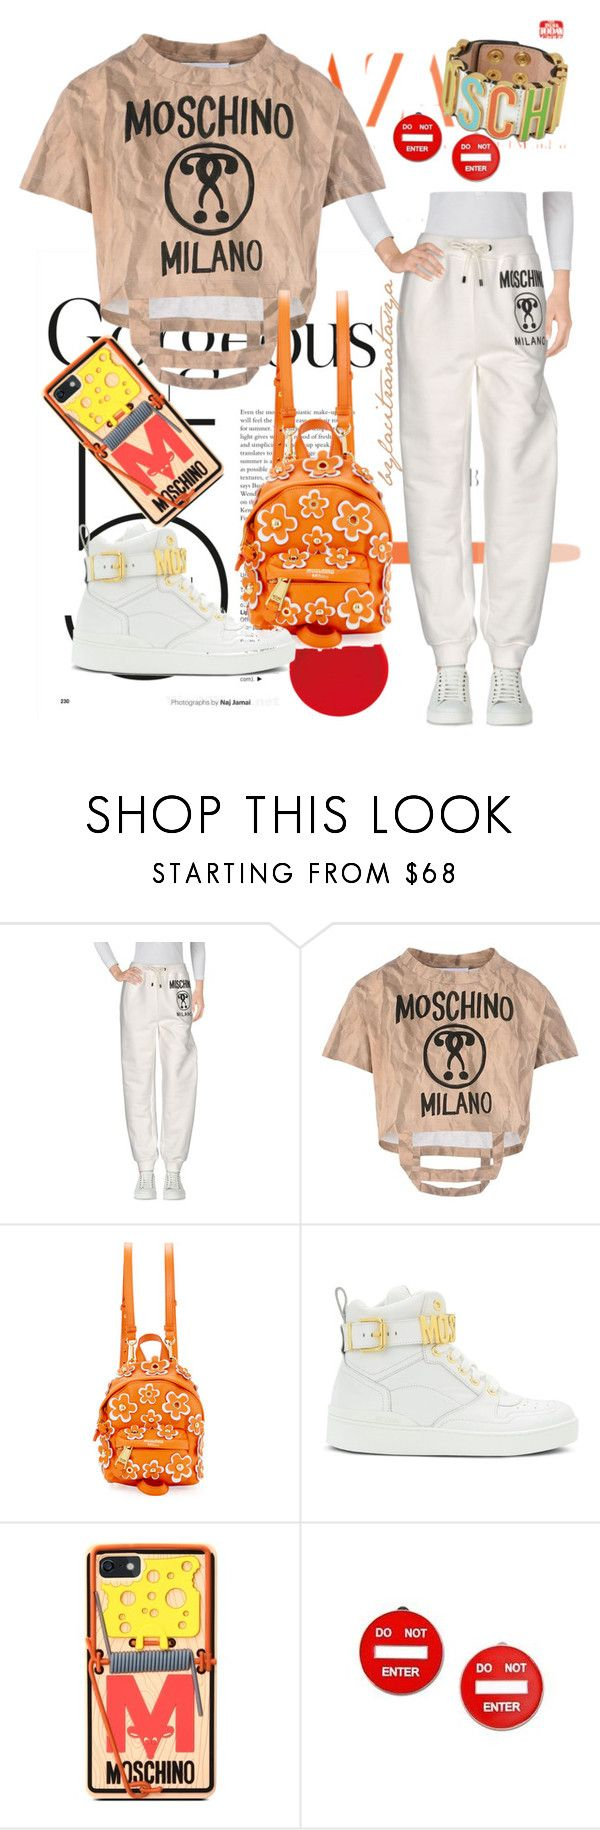 FEELING MYSELF WITH MOSCHINO by bylacitranatasya on Polyvore featuring Moschino